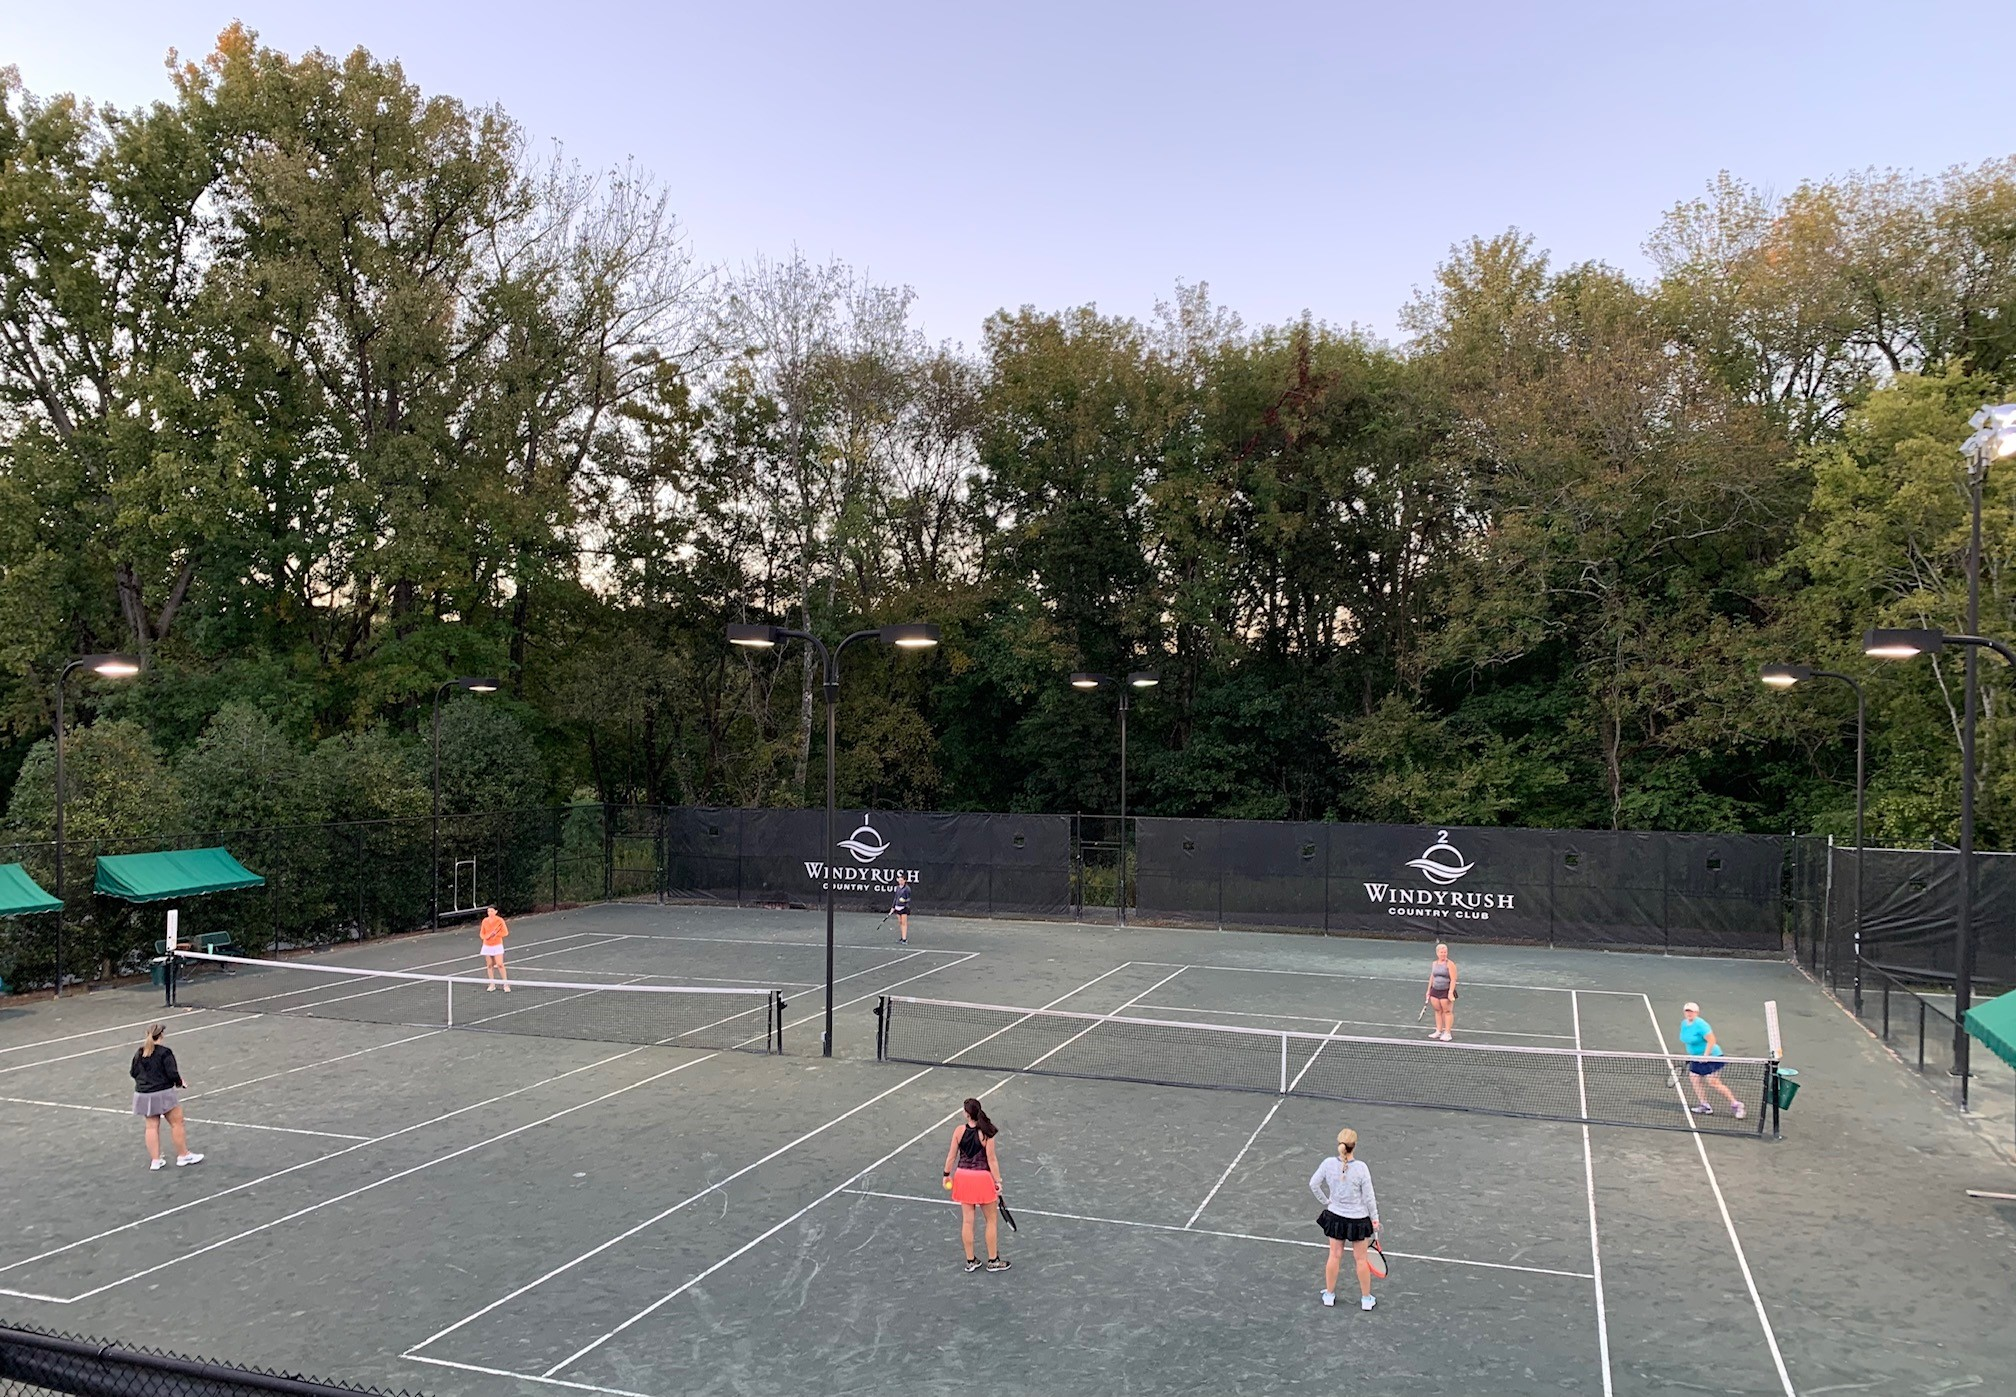 clay courts pic 6